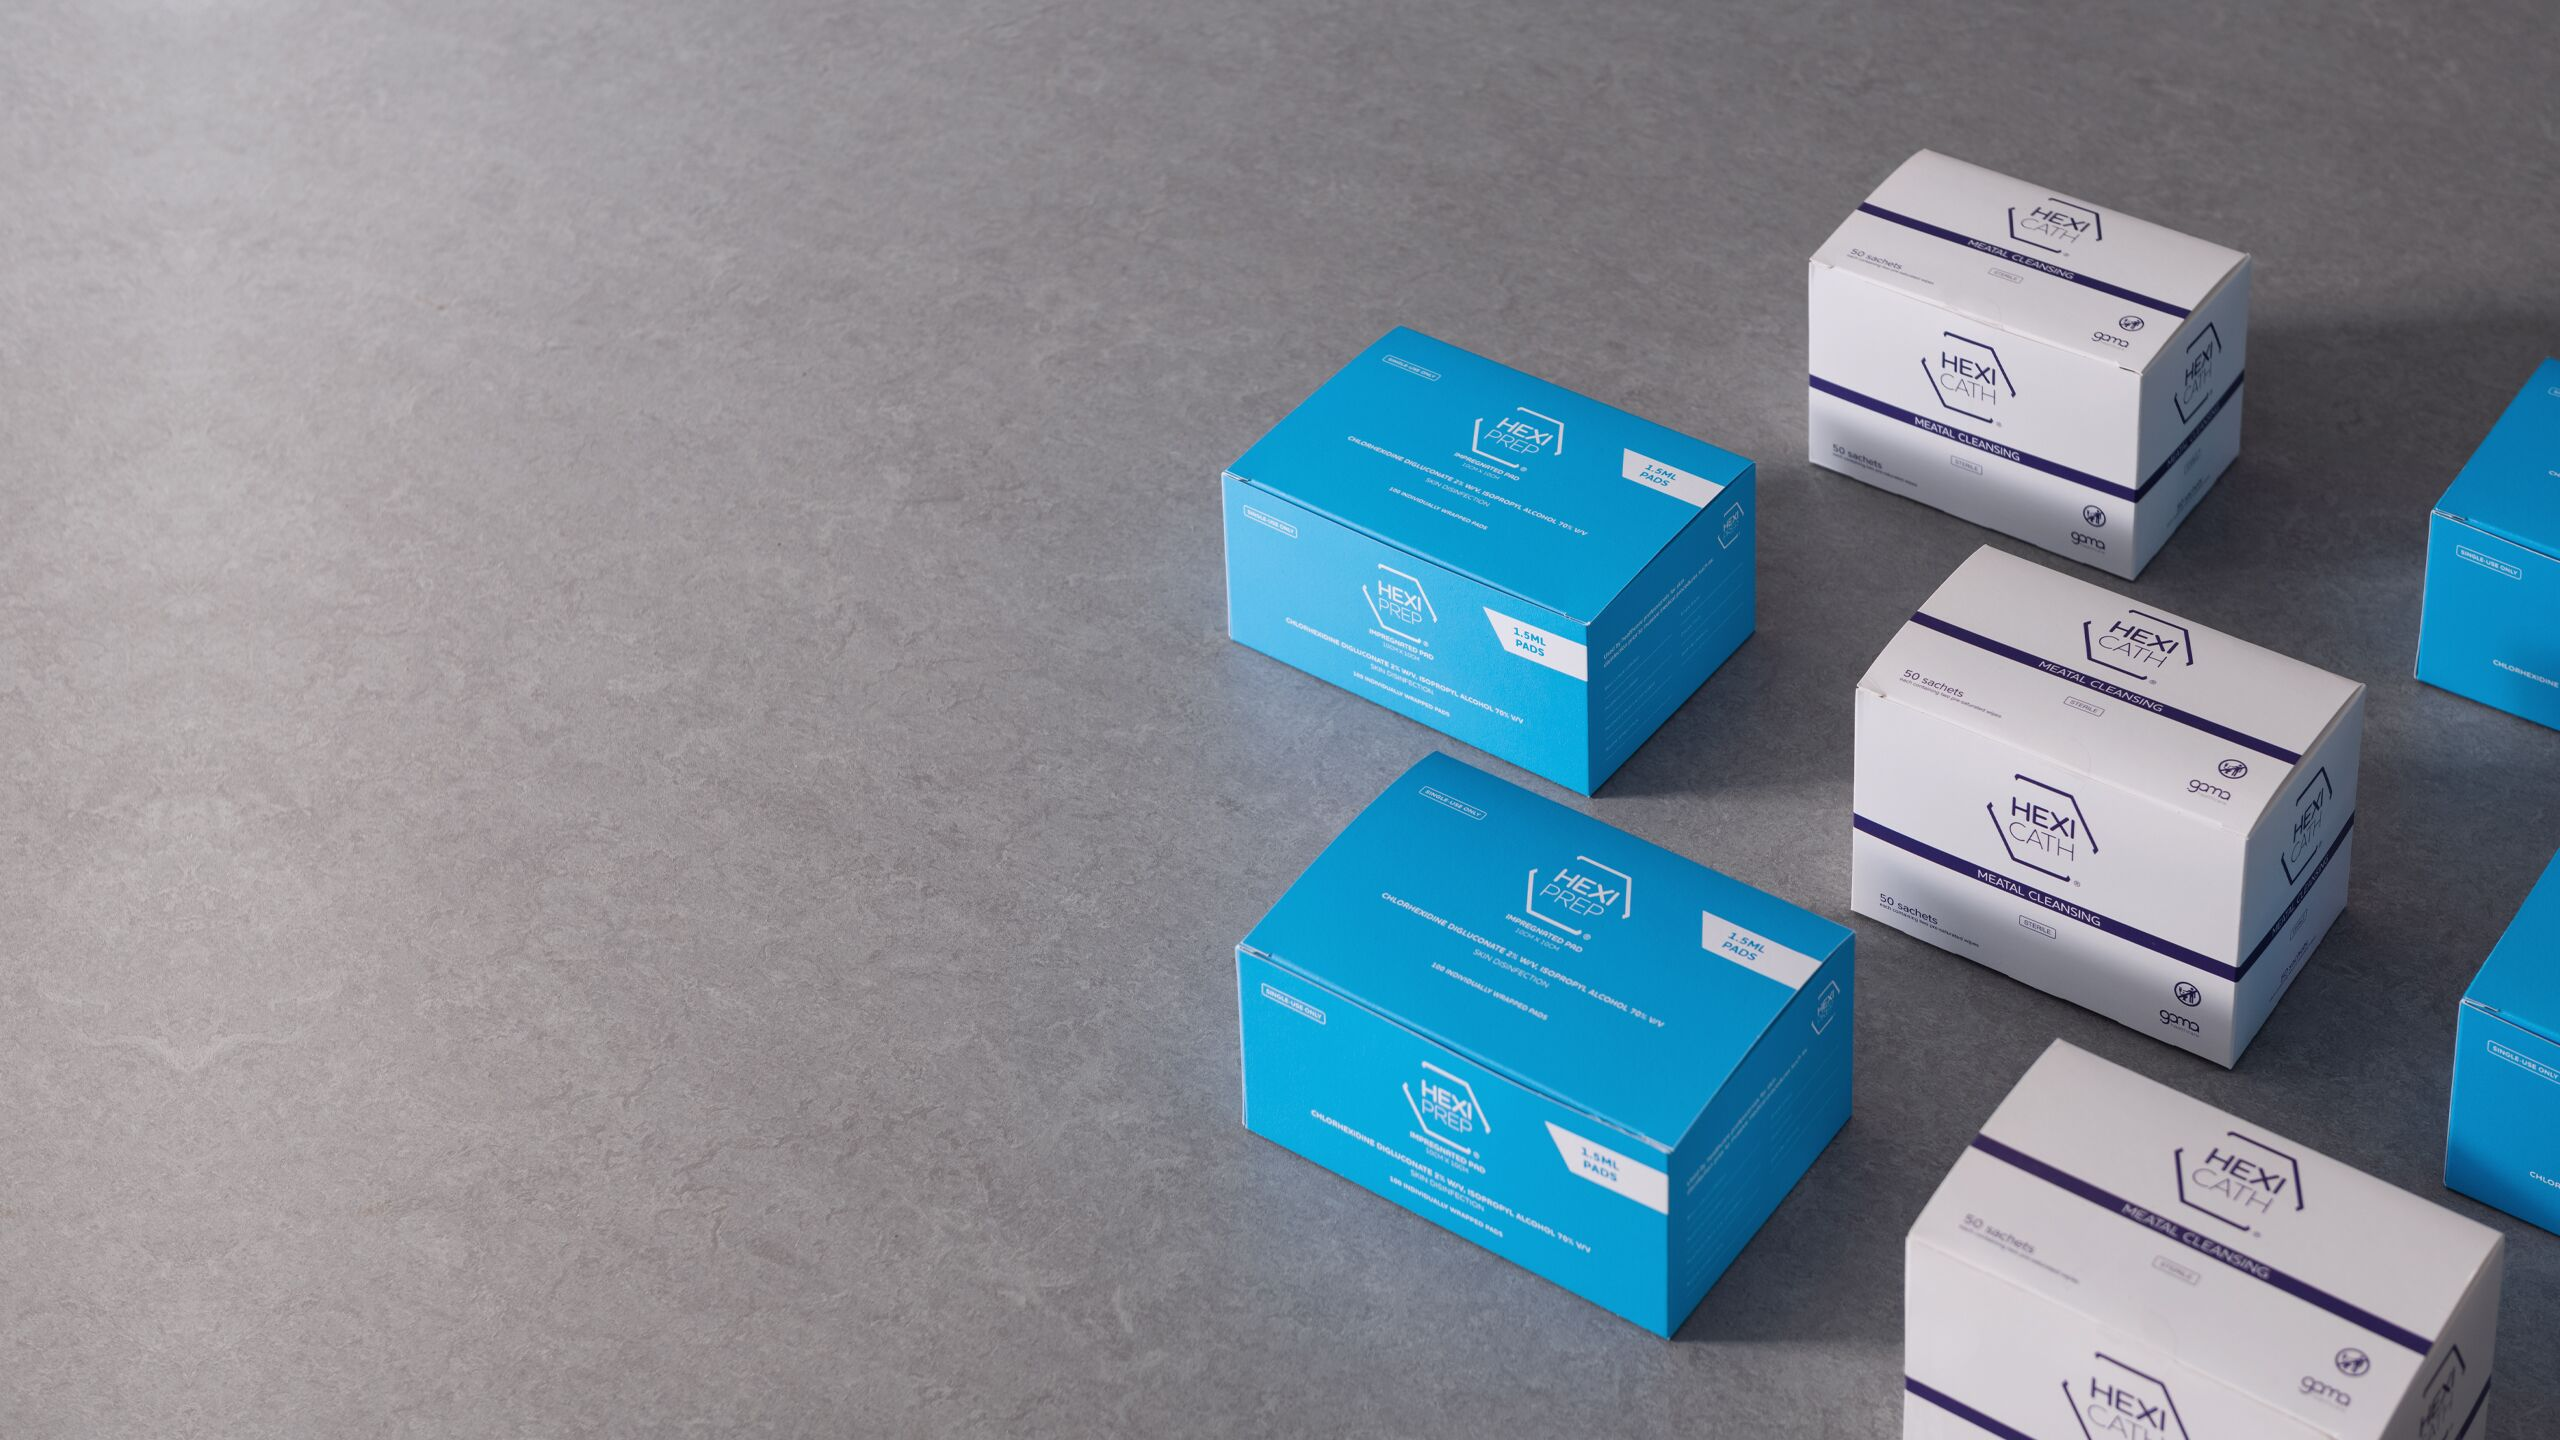 Boxes of HEXI PREP and HEXI CATH